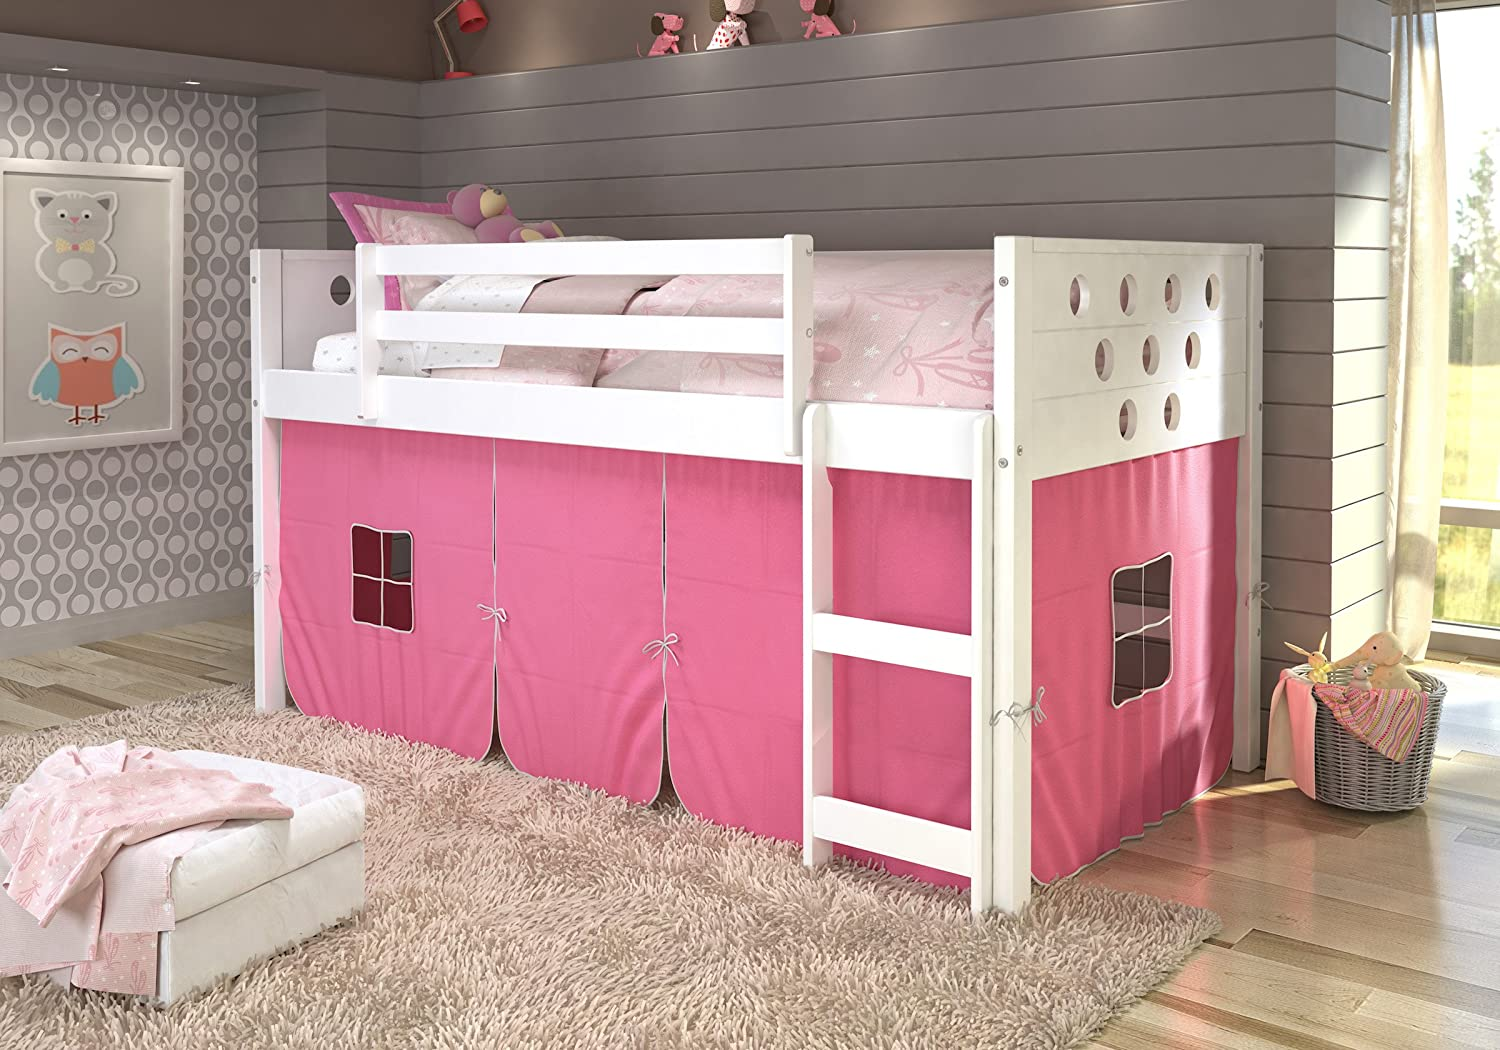 DONCO KIDS 780ATW_750C-TP Circles Low Loft Bed Pink Tent, Twin, White